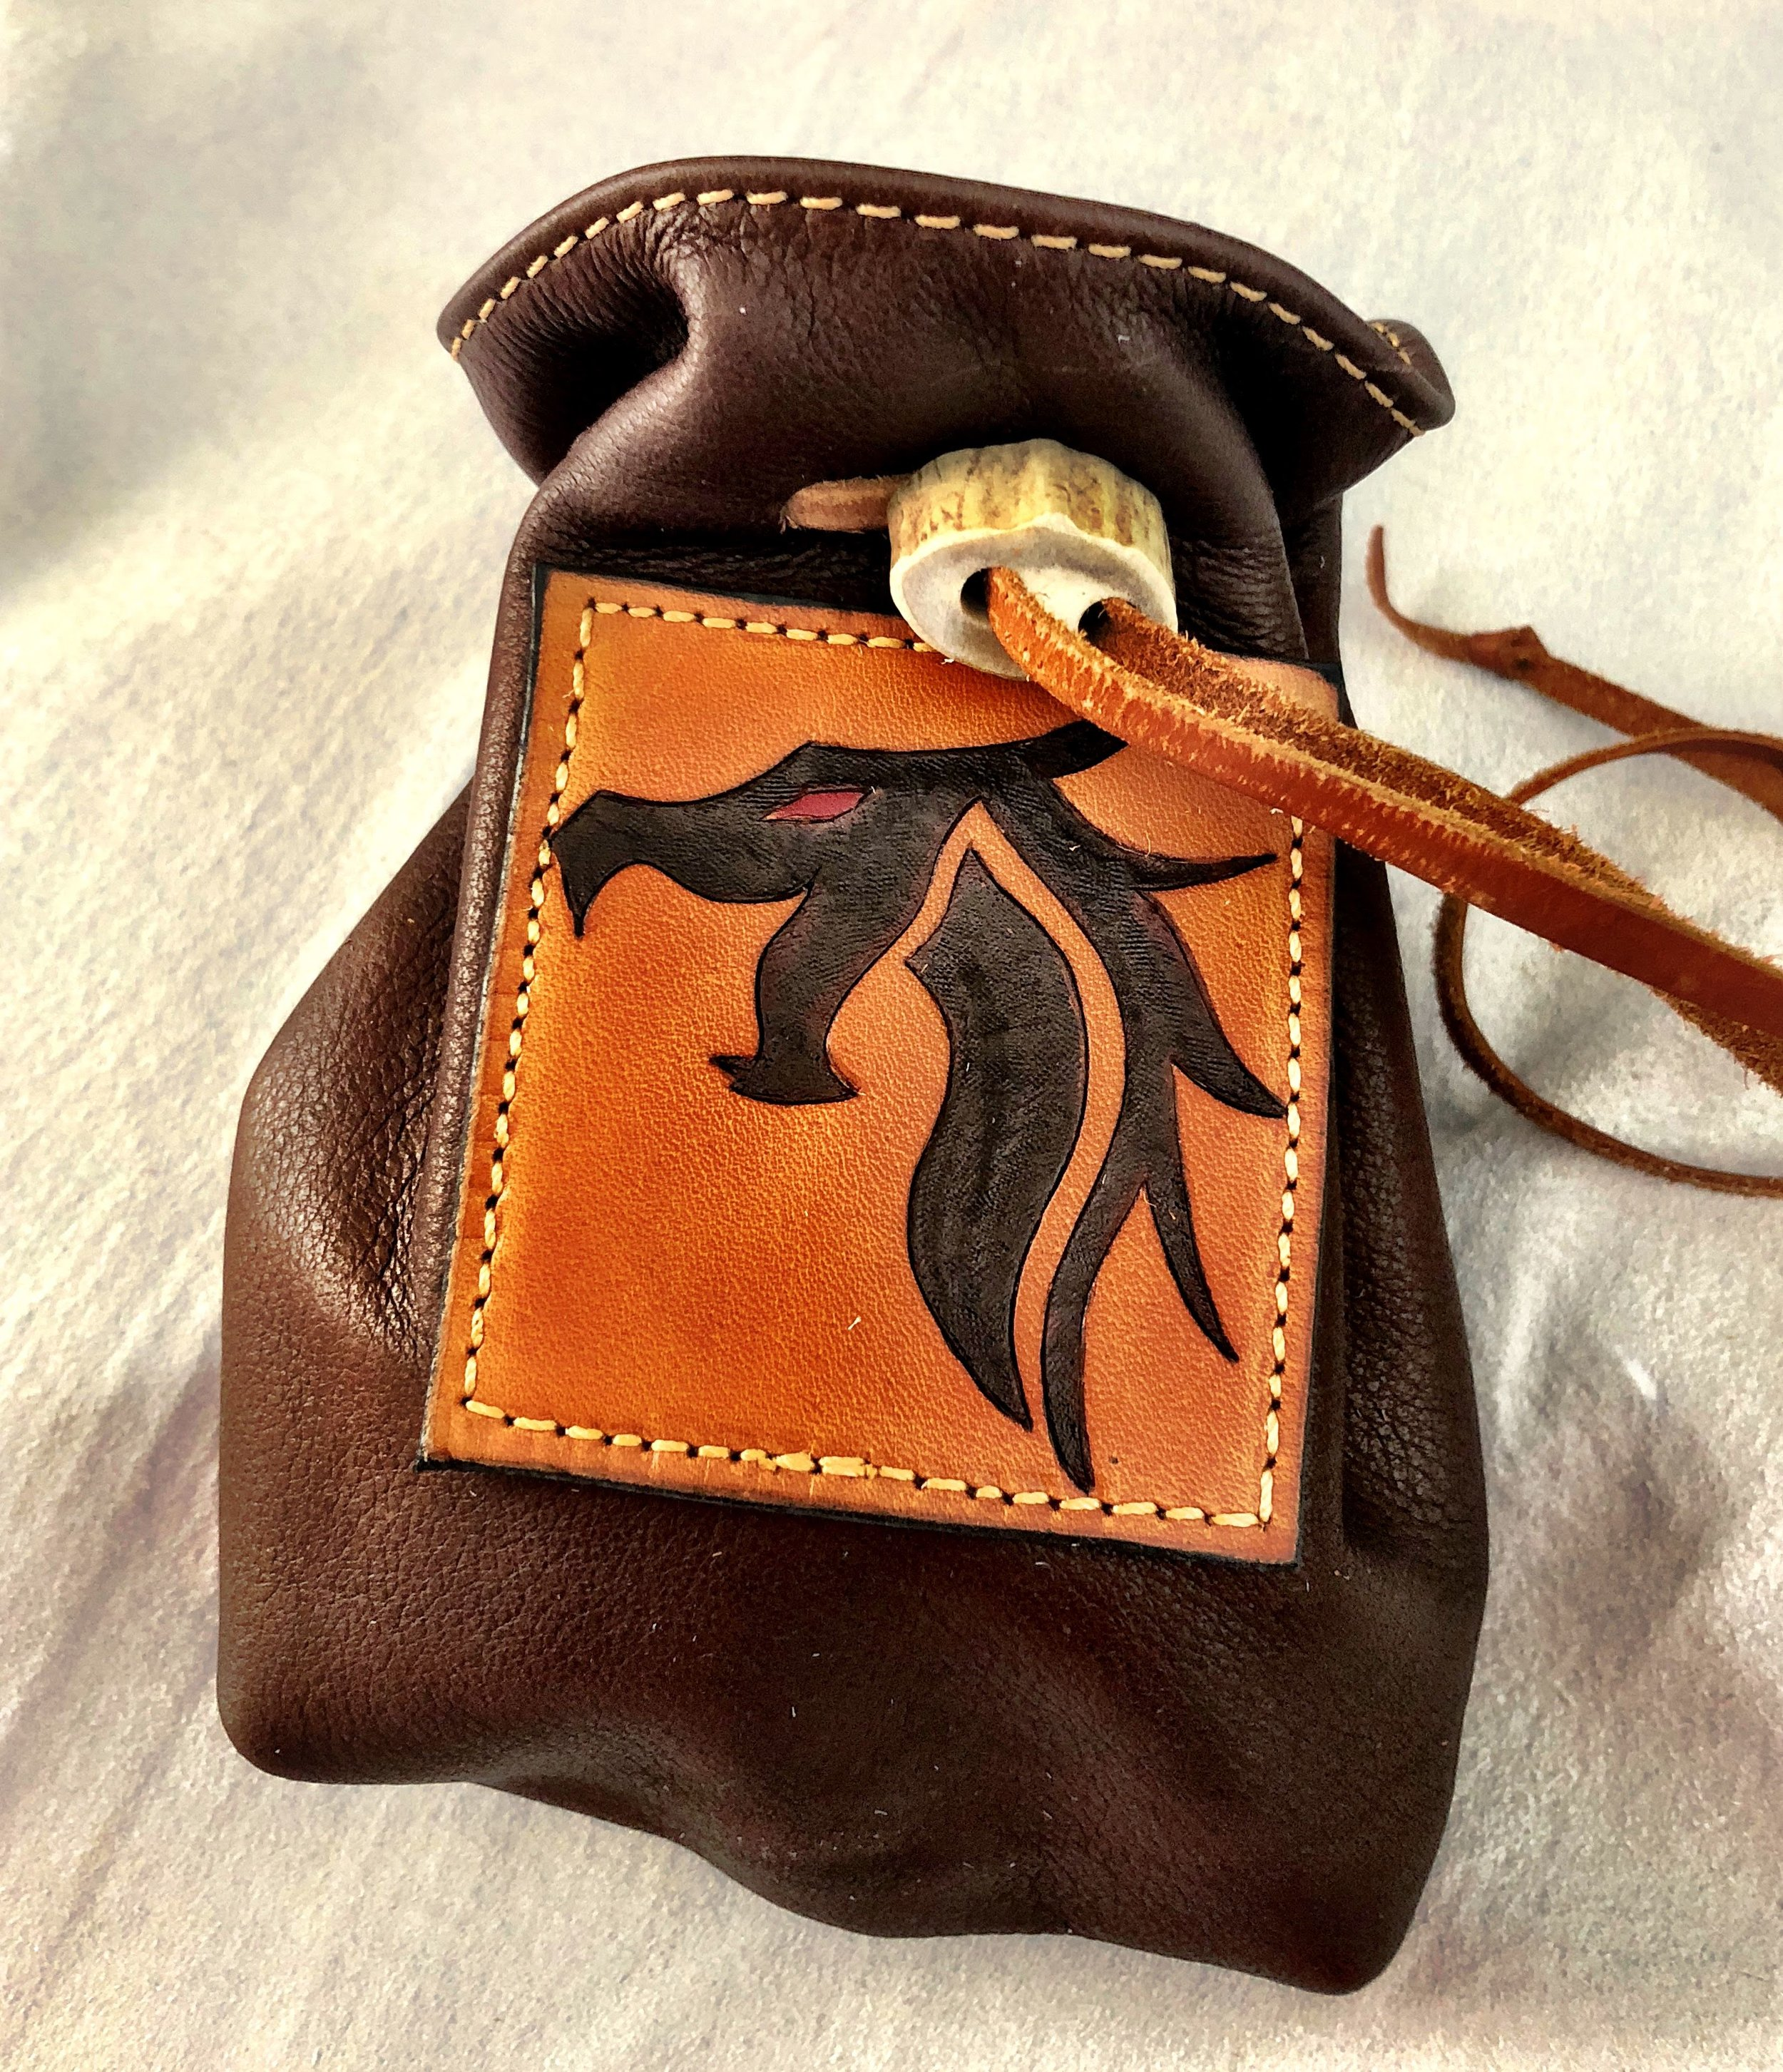 A dontation bag for Dragon Fall (Convention) and thier fund raiser.